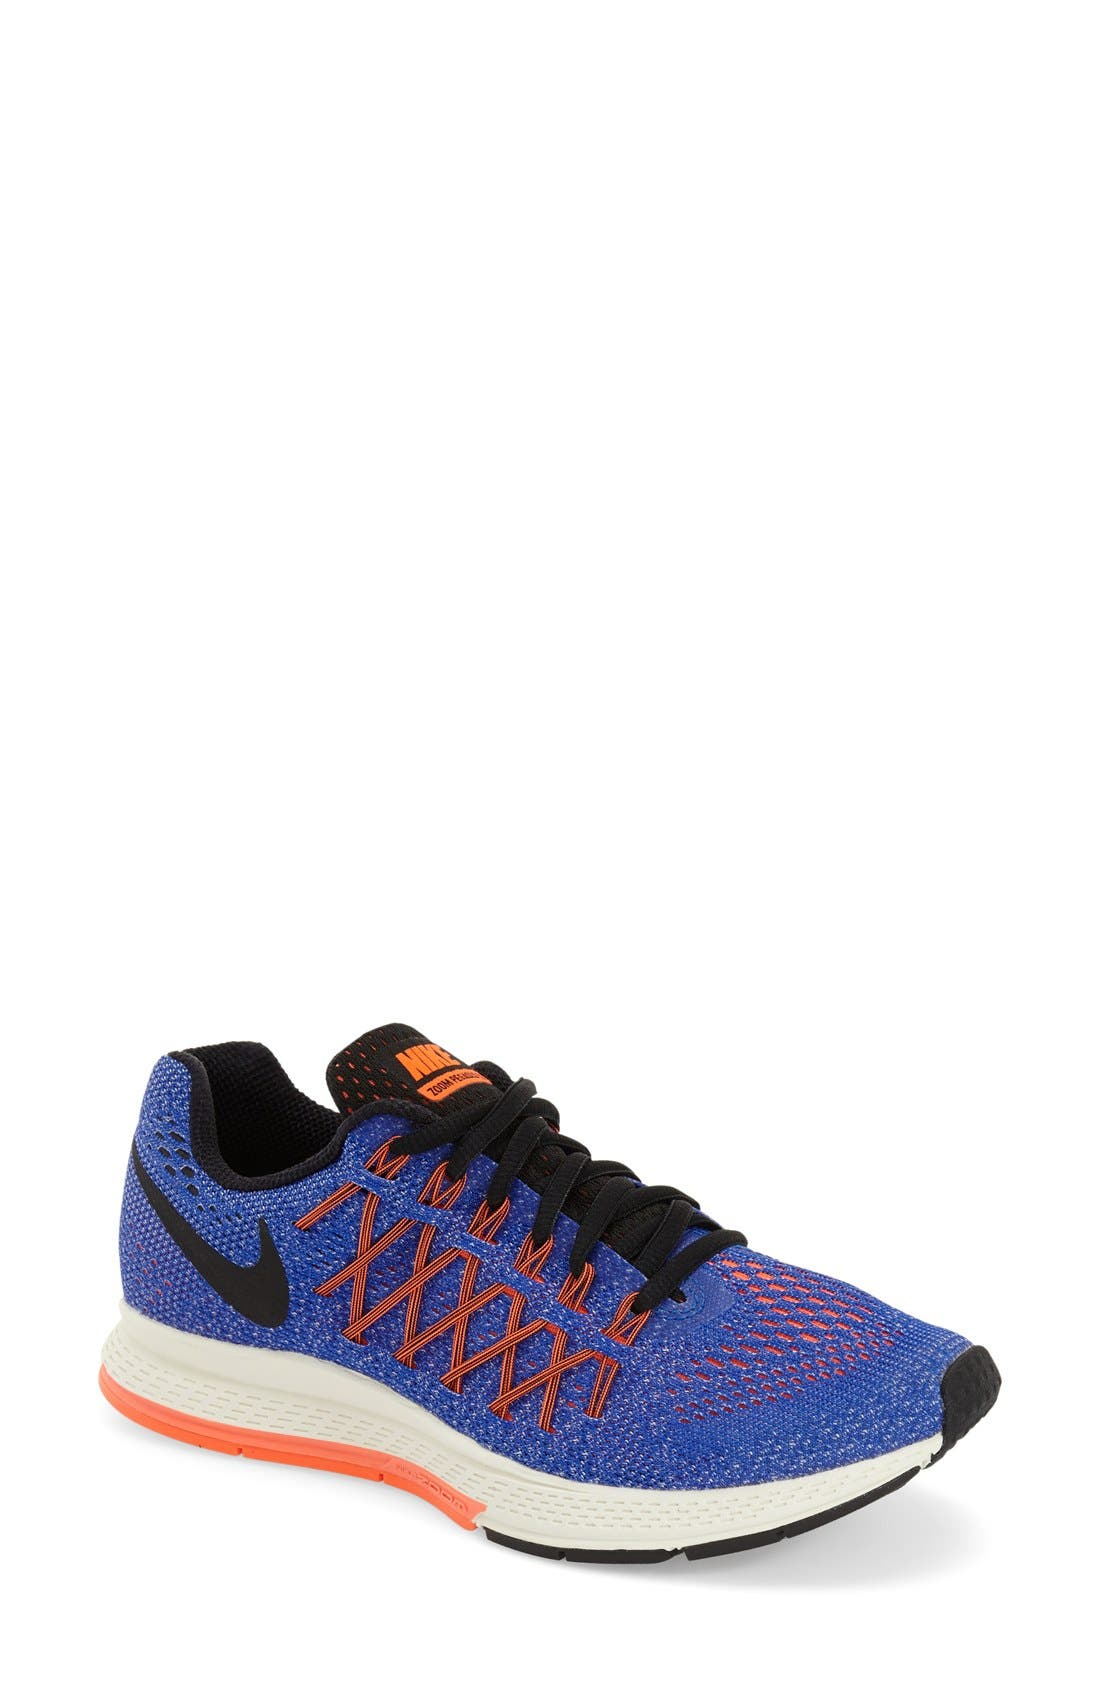 Main Image - Nike 'Zoom Pegasus 32' Running Shoe (Women)